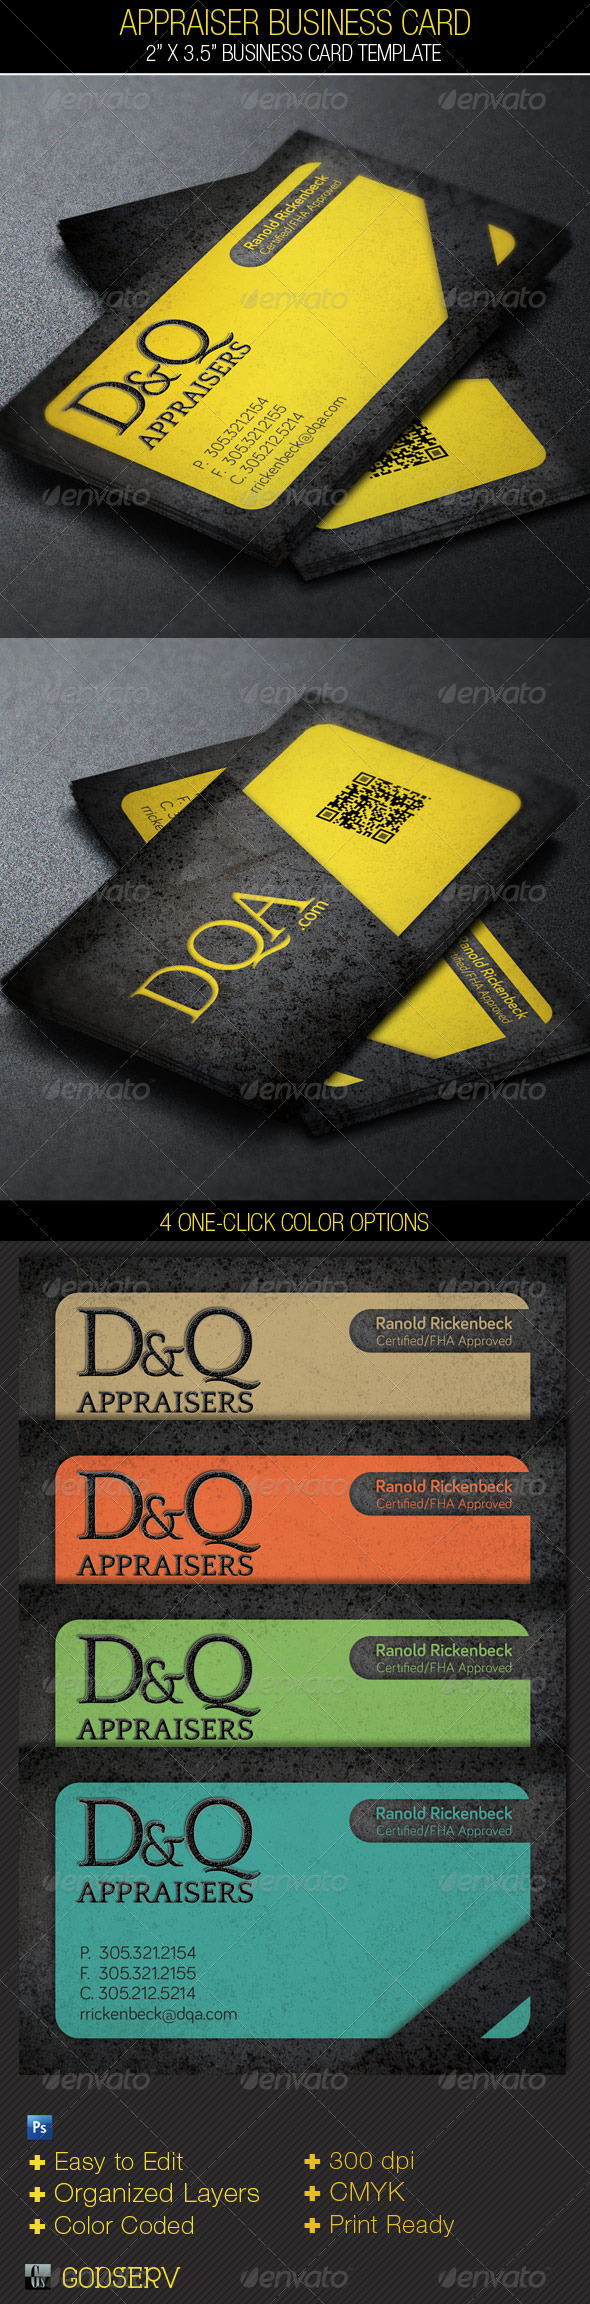 Appraiser Business Card Template - Industry Specific Business Cards